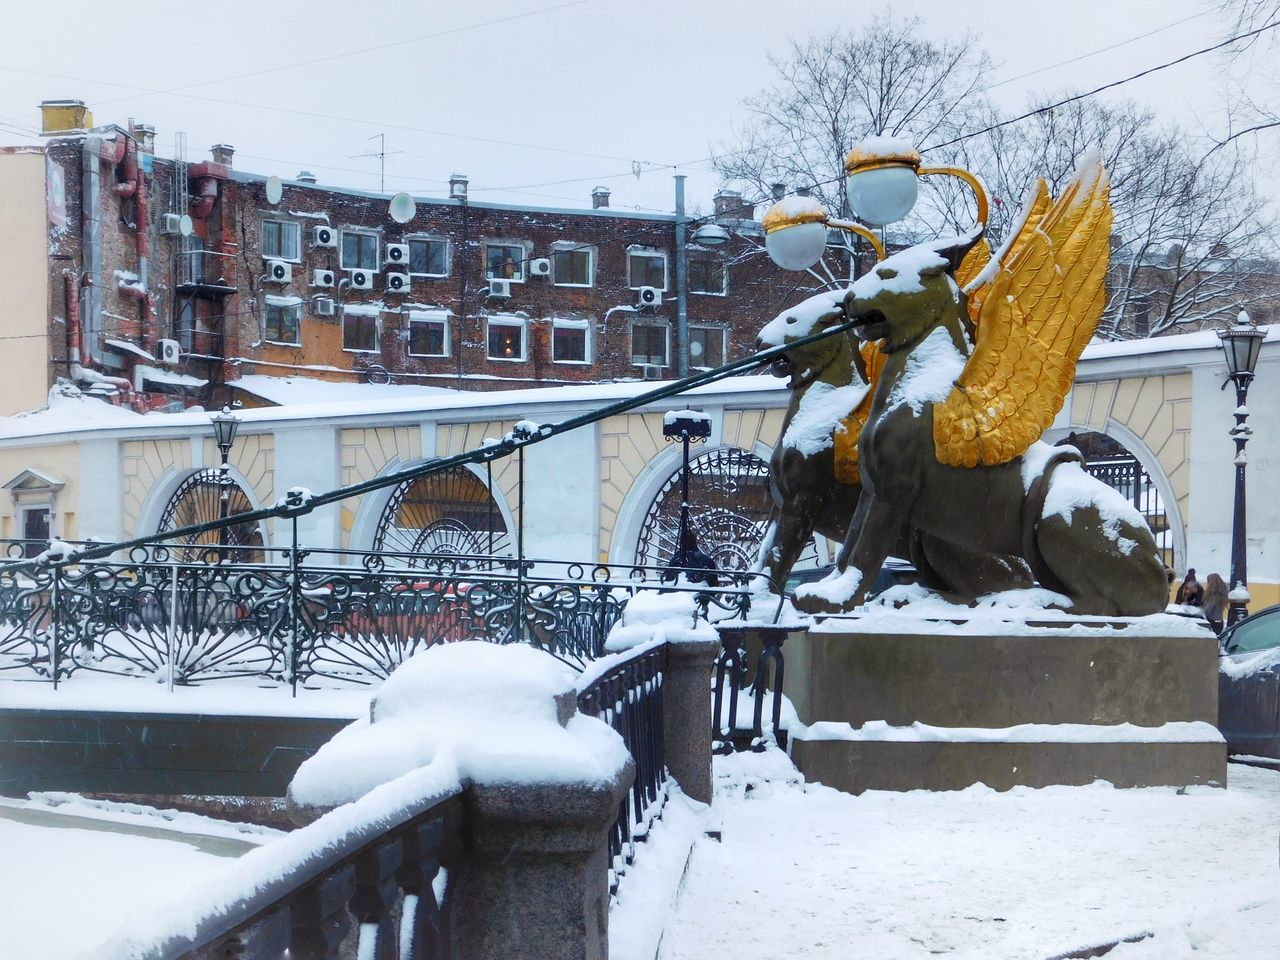 Animal Representation Animal Themes Architecture Bridge Bridge Over Water Building Exterior Built Structure City Cold Temperature Day Ice Iced Lion Modern Outdoors Snow Snow Covered Snowing Statue Winter